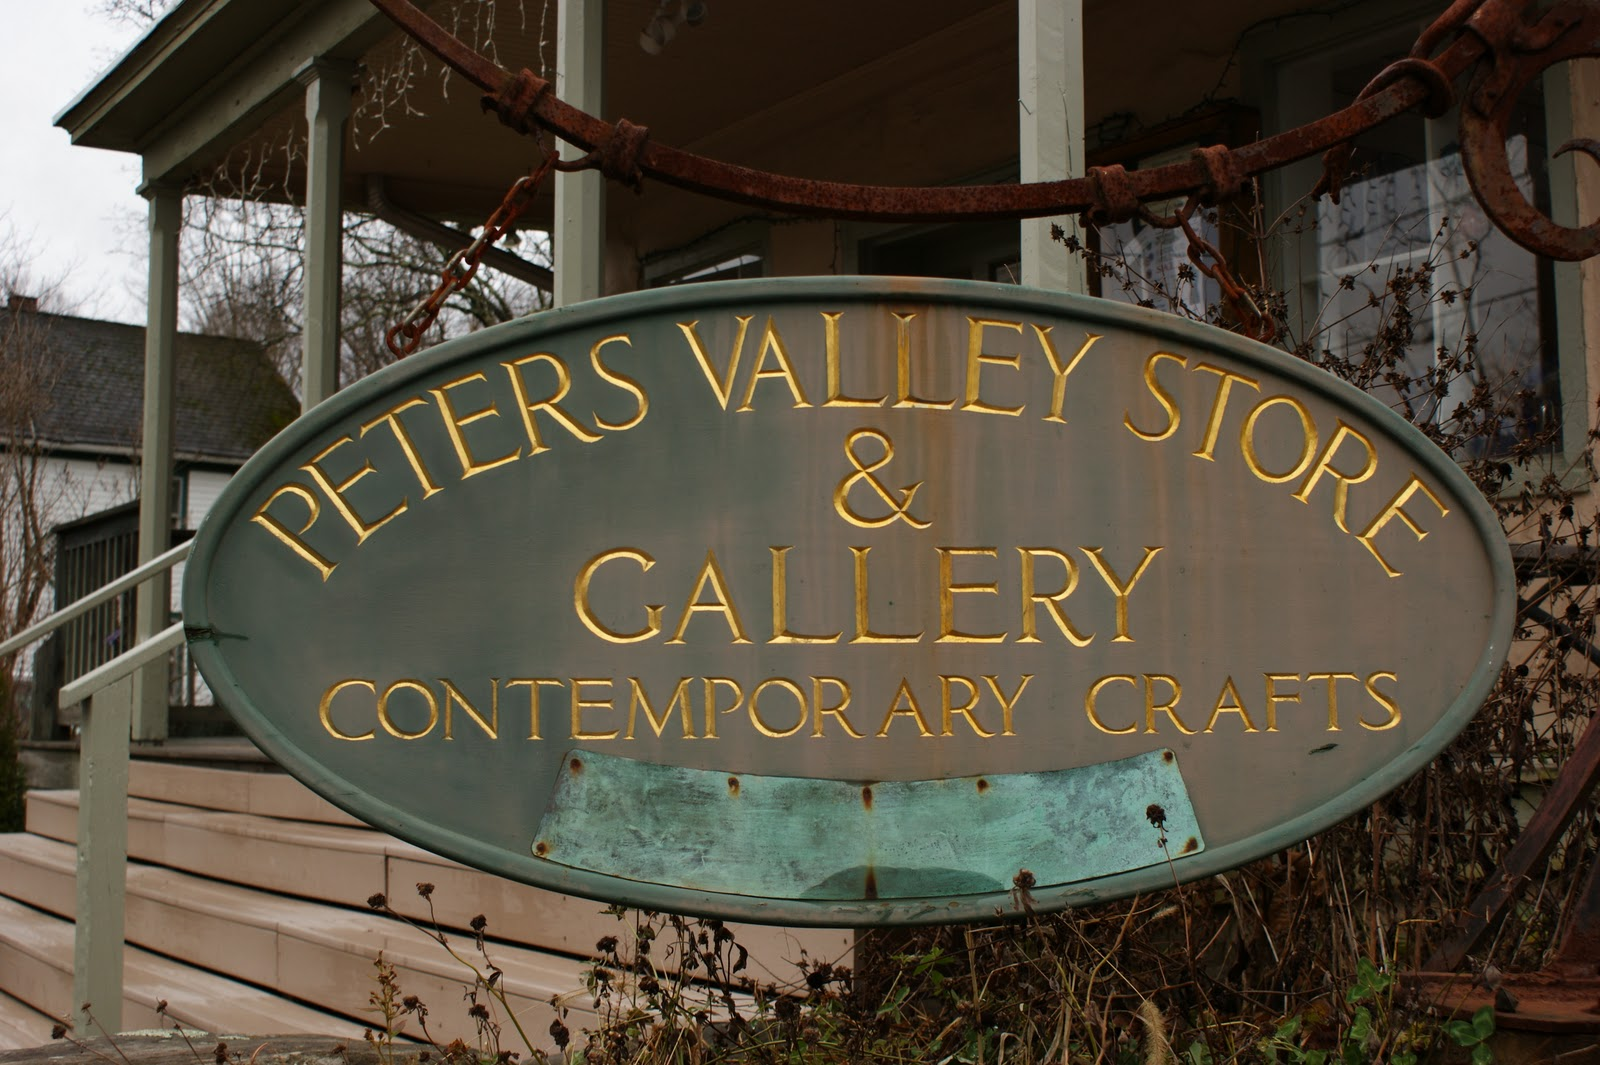 New jersey sussex county layton -  Am In Sussex County Is A Stop At Peters Valley Craft Center And Store This Place Is Off The Beaten Path Peters Valley Is Close To Layton Very Worth